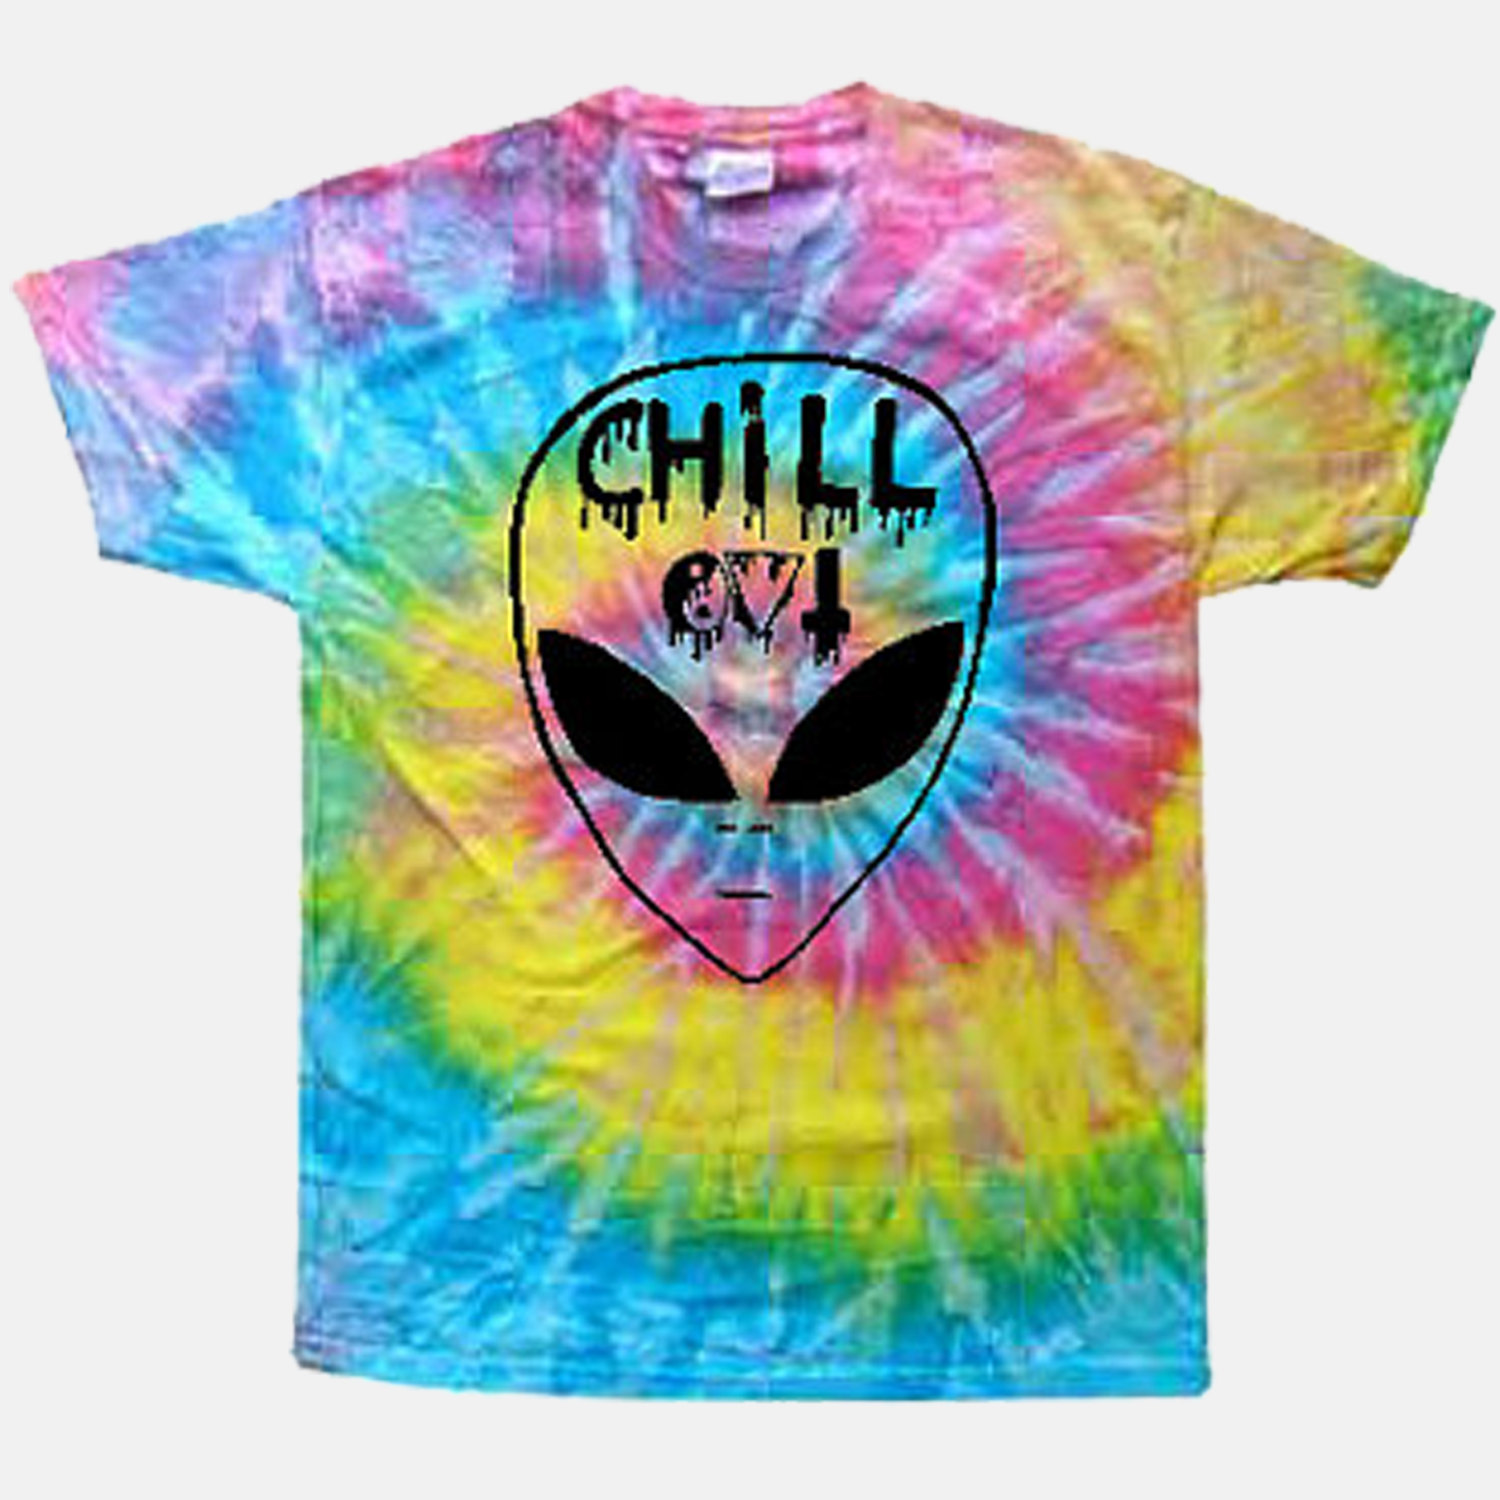 Chill out alien tie dye tee // alienattire